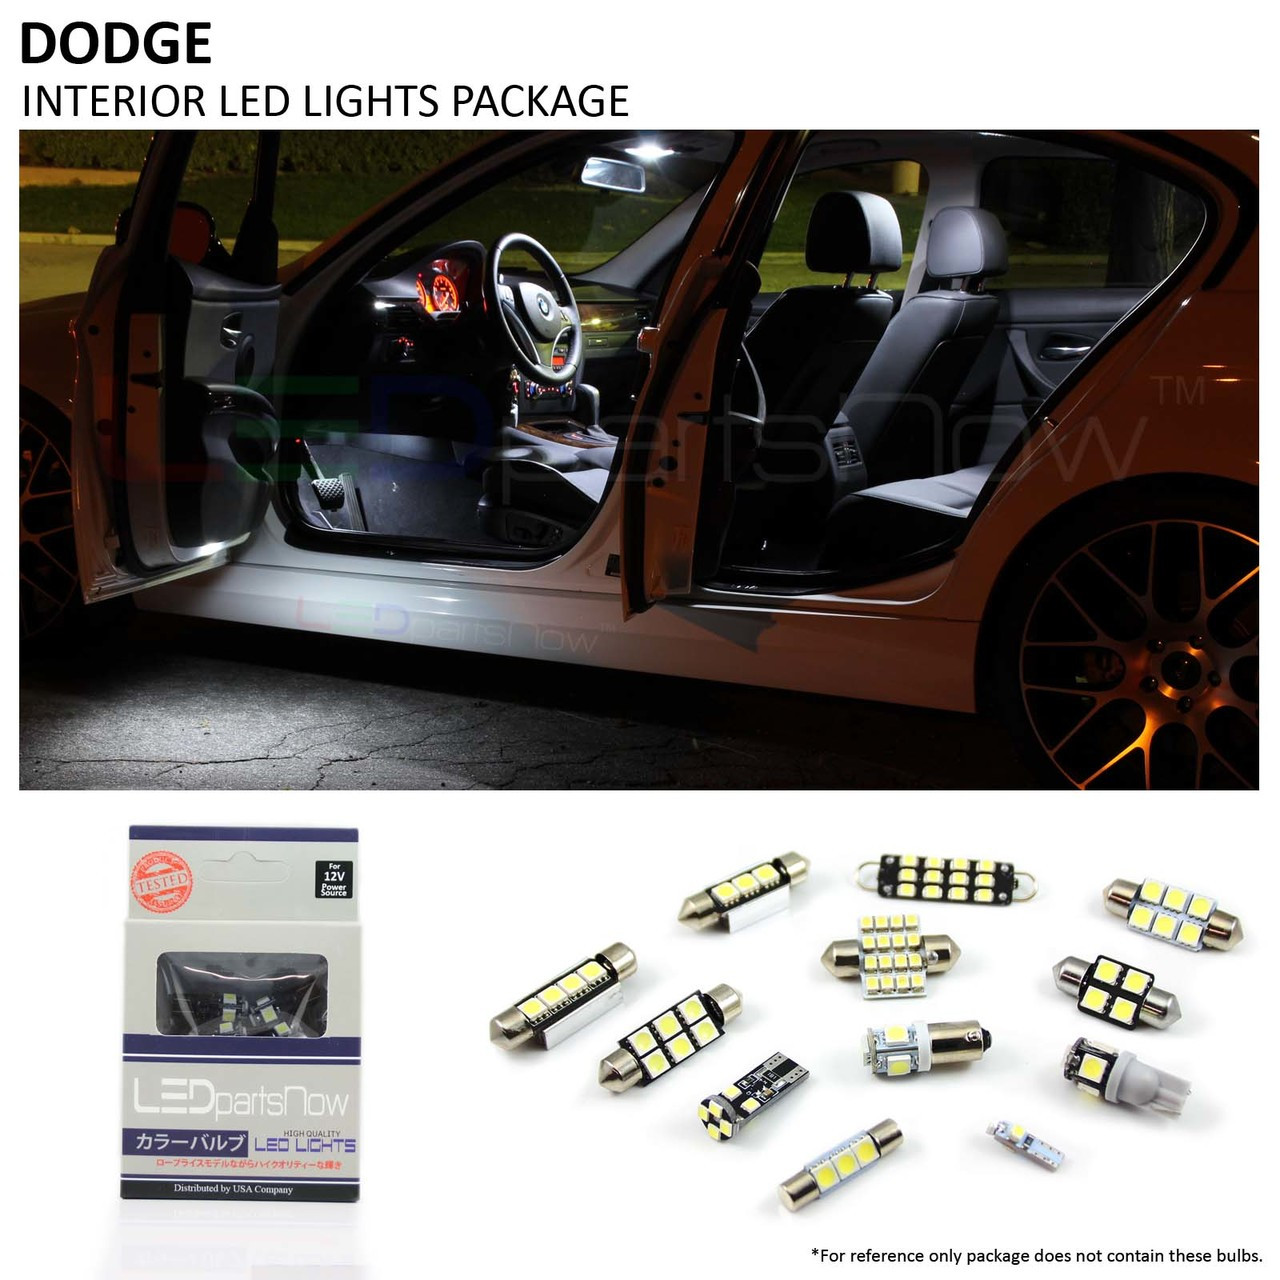 2004-2009 Dodge Durango White Interior Map LIcense Plate LED Lights Package Kit